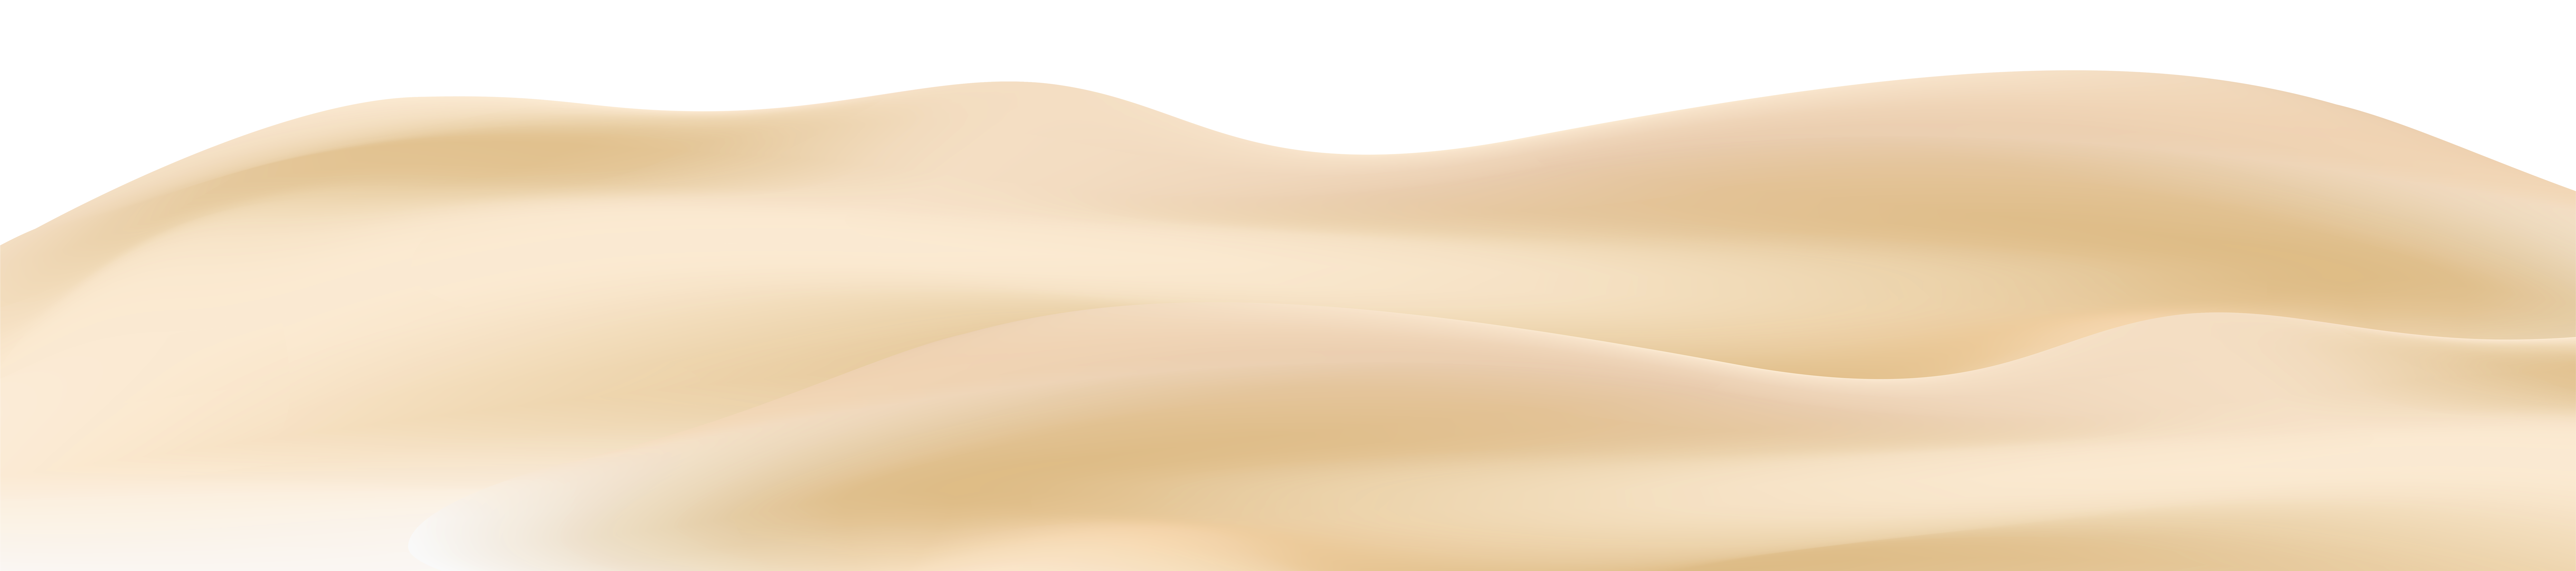 sand dune png